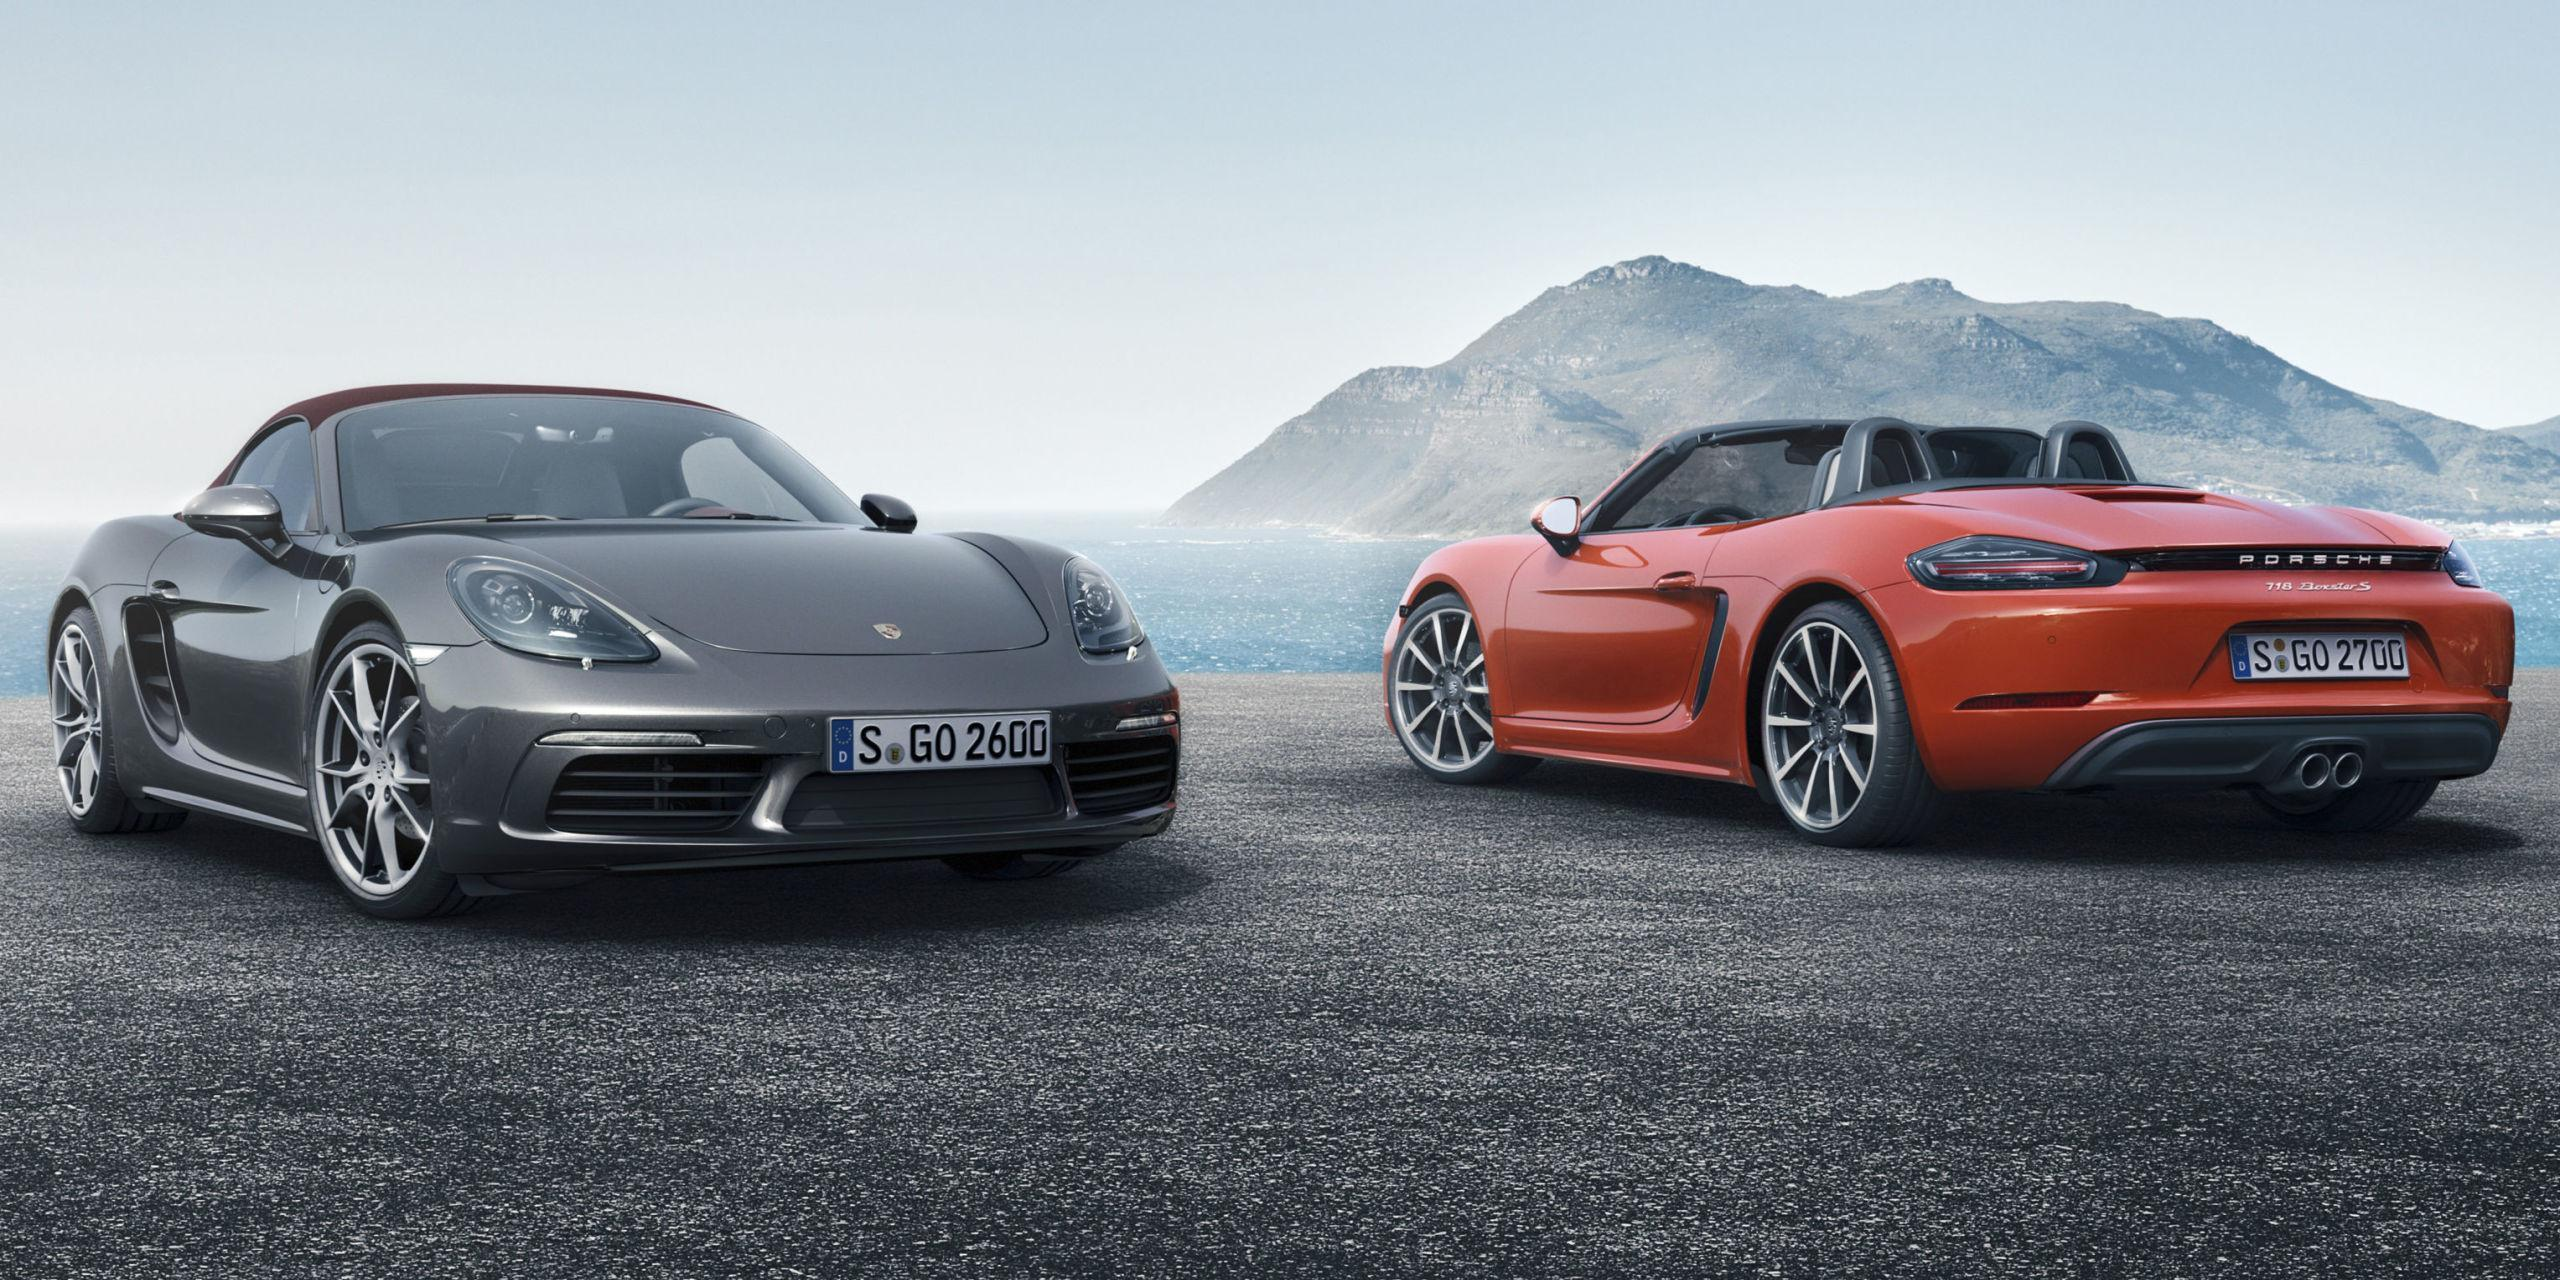 2017 Porsche 718 Boxster and Boxster S: Here They Are, Officially